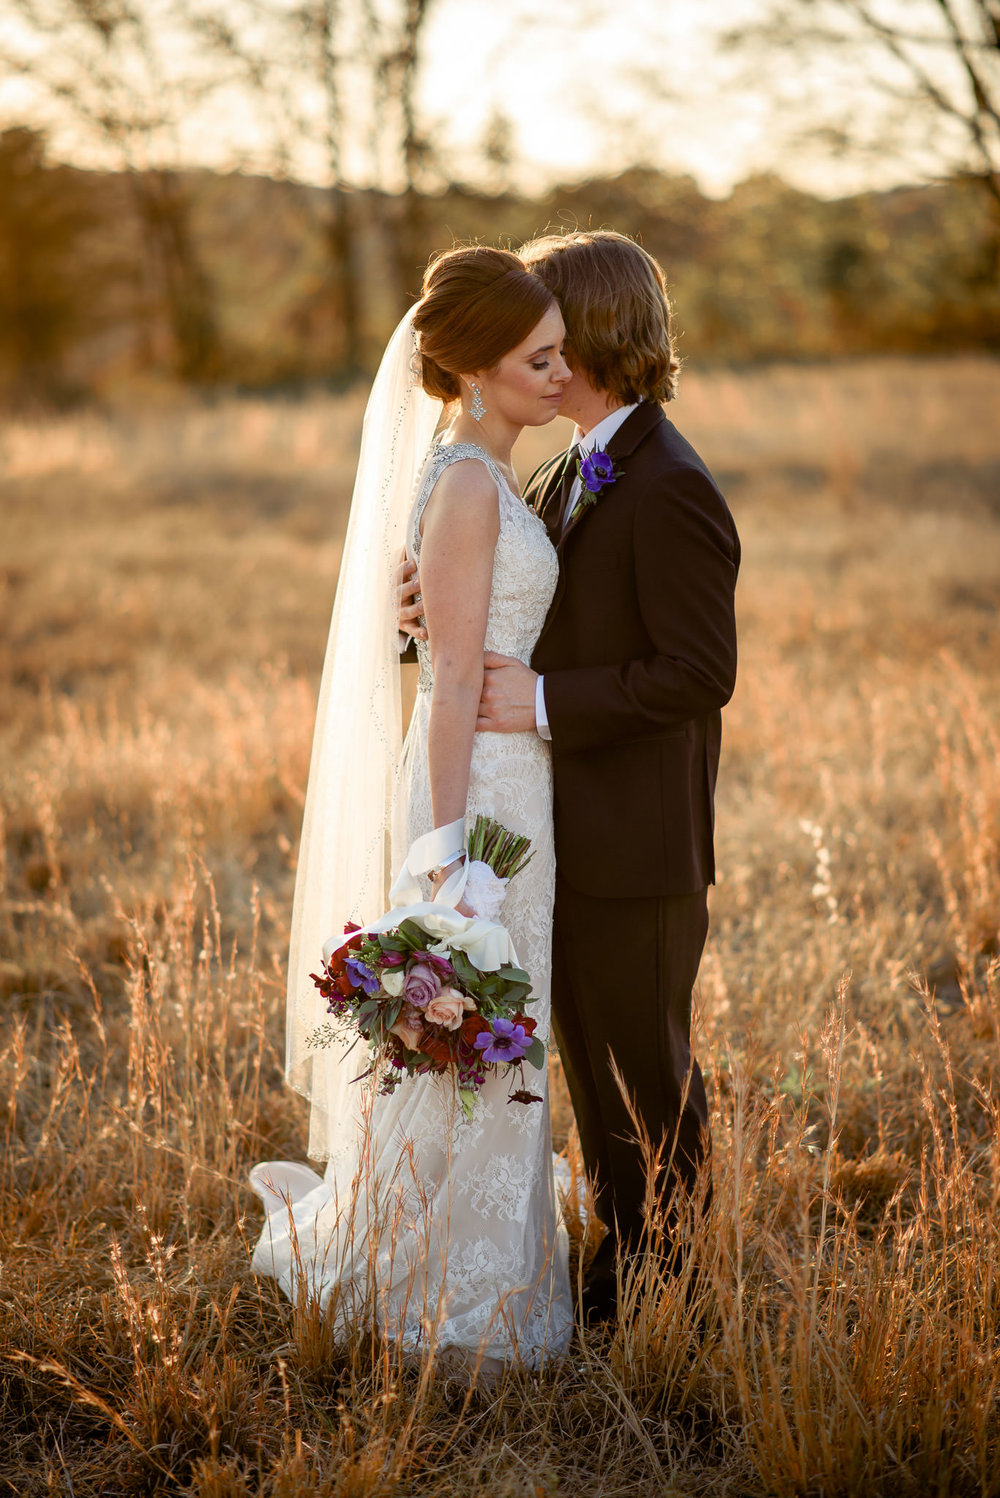 Greg and Jess Photography Nashville Portrait and Wedding Photographer 78.jpg